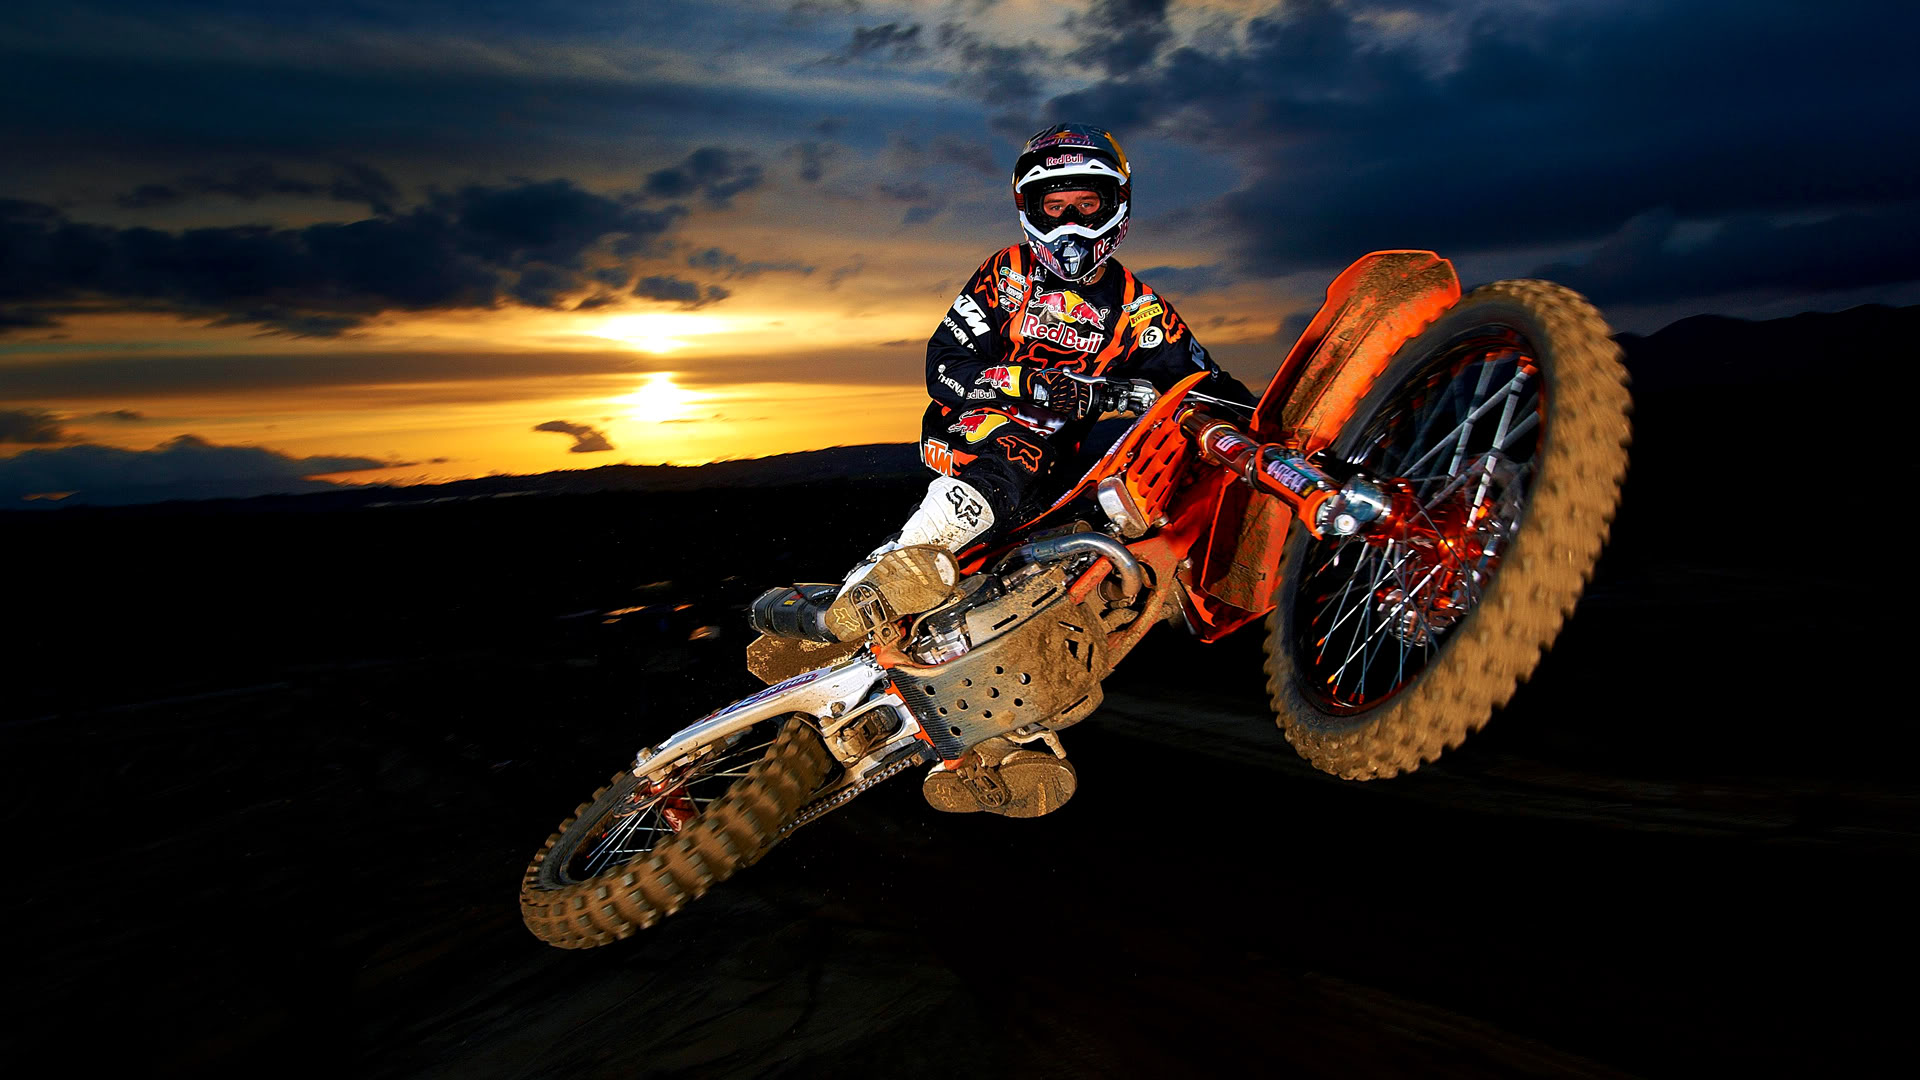 KTM Motocross Offroad Wallpaper HD 817 Wallpaper with 1920x1080 1920x1080